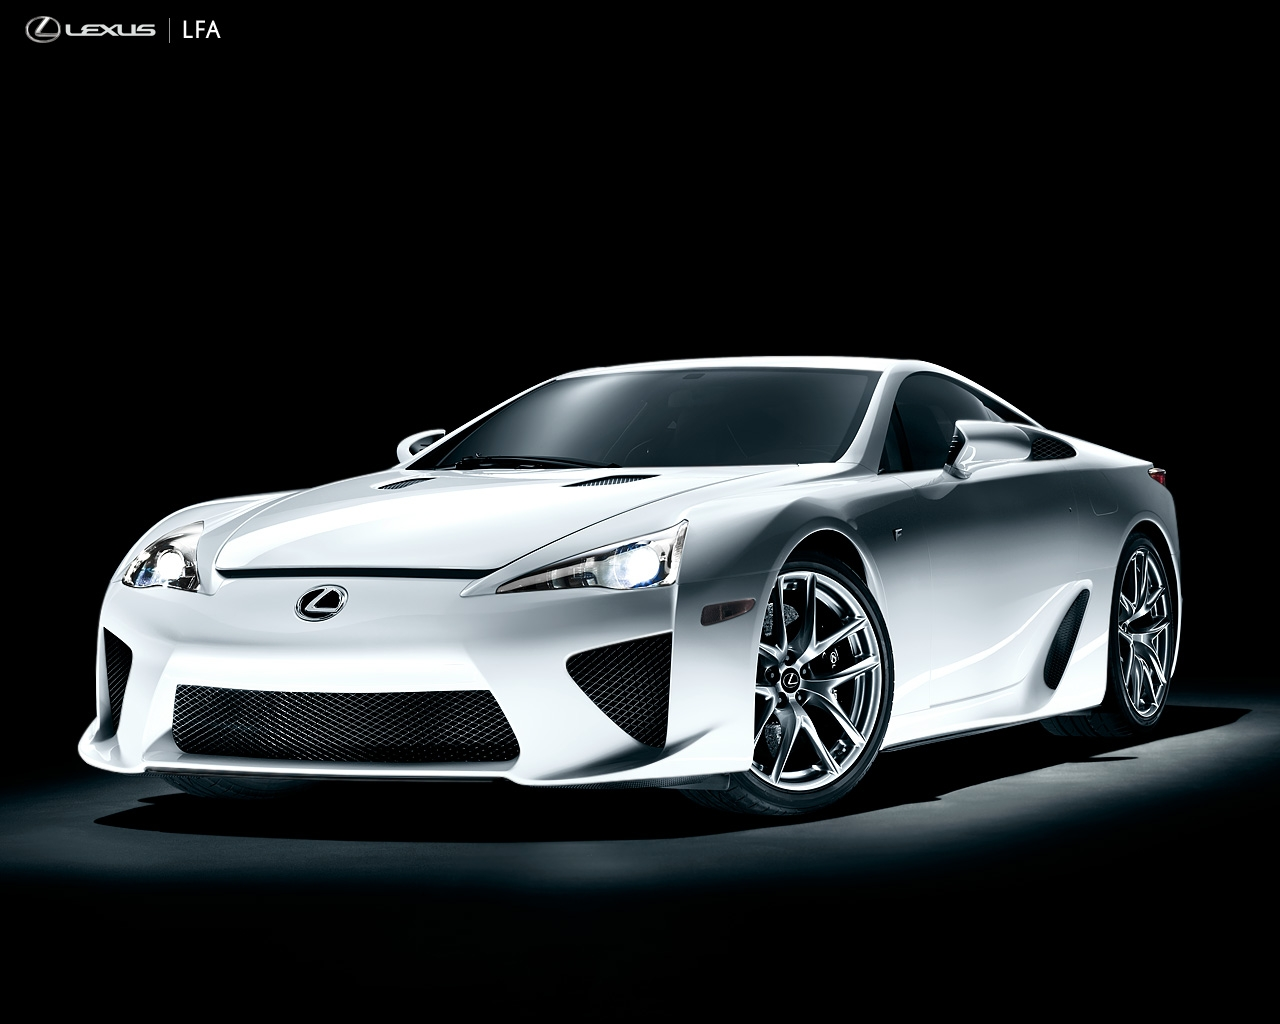 Photo of Best Car Ads: Lexus LFA